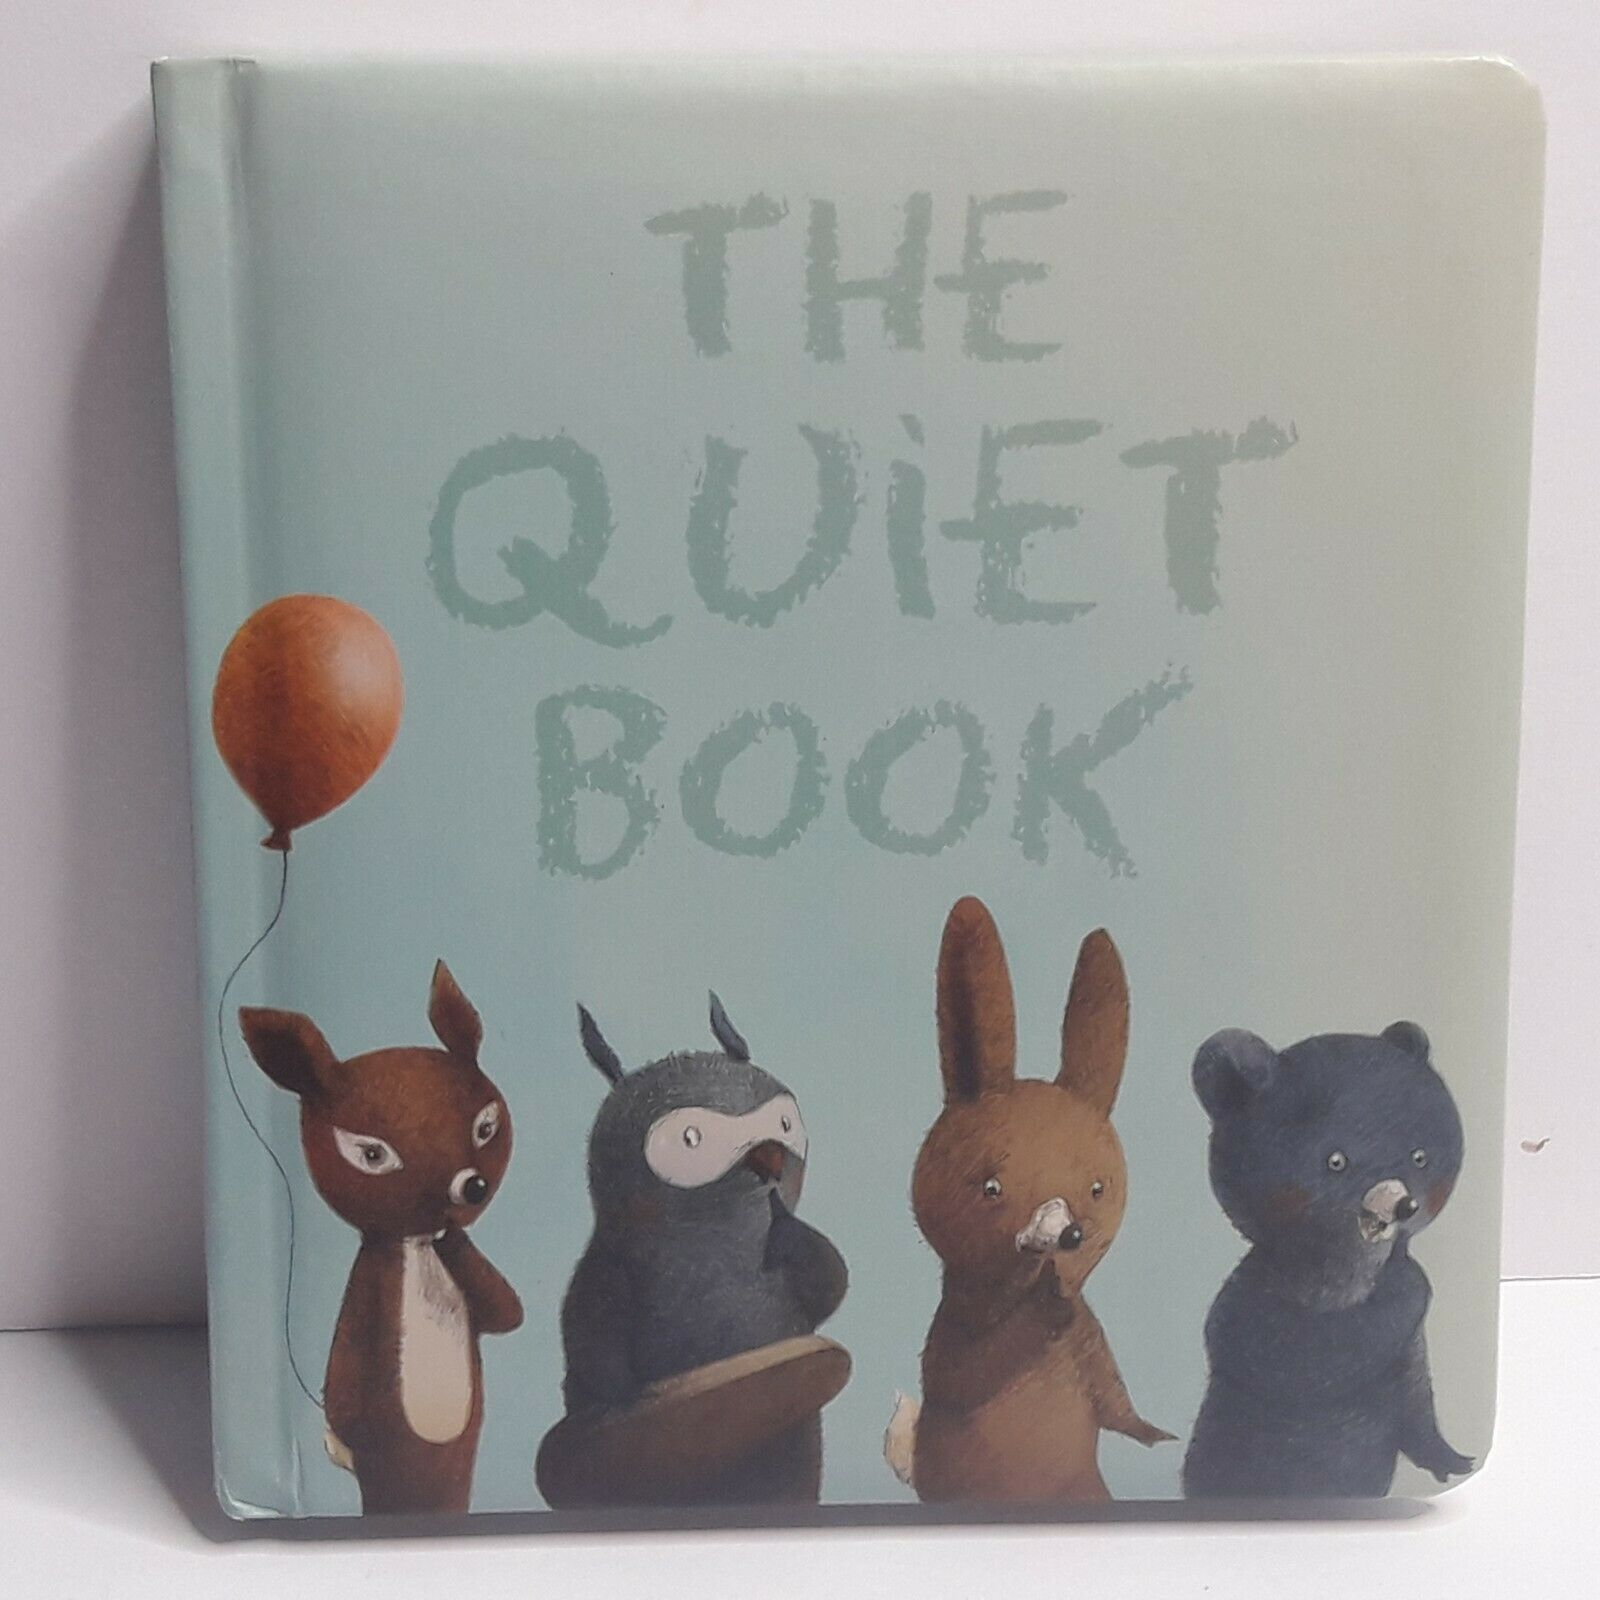 Primary image for The Quiet Book by Deborah Underwood (2010, Hardcover)